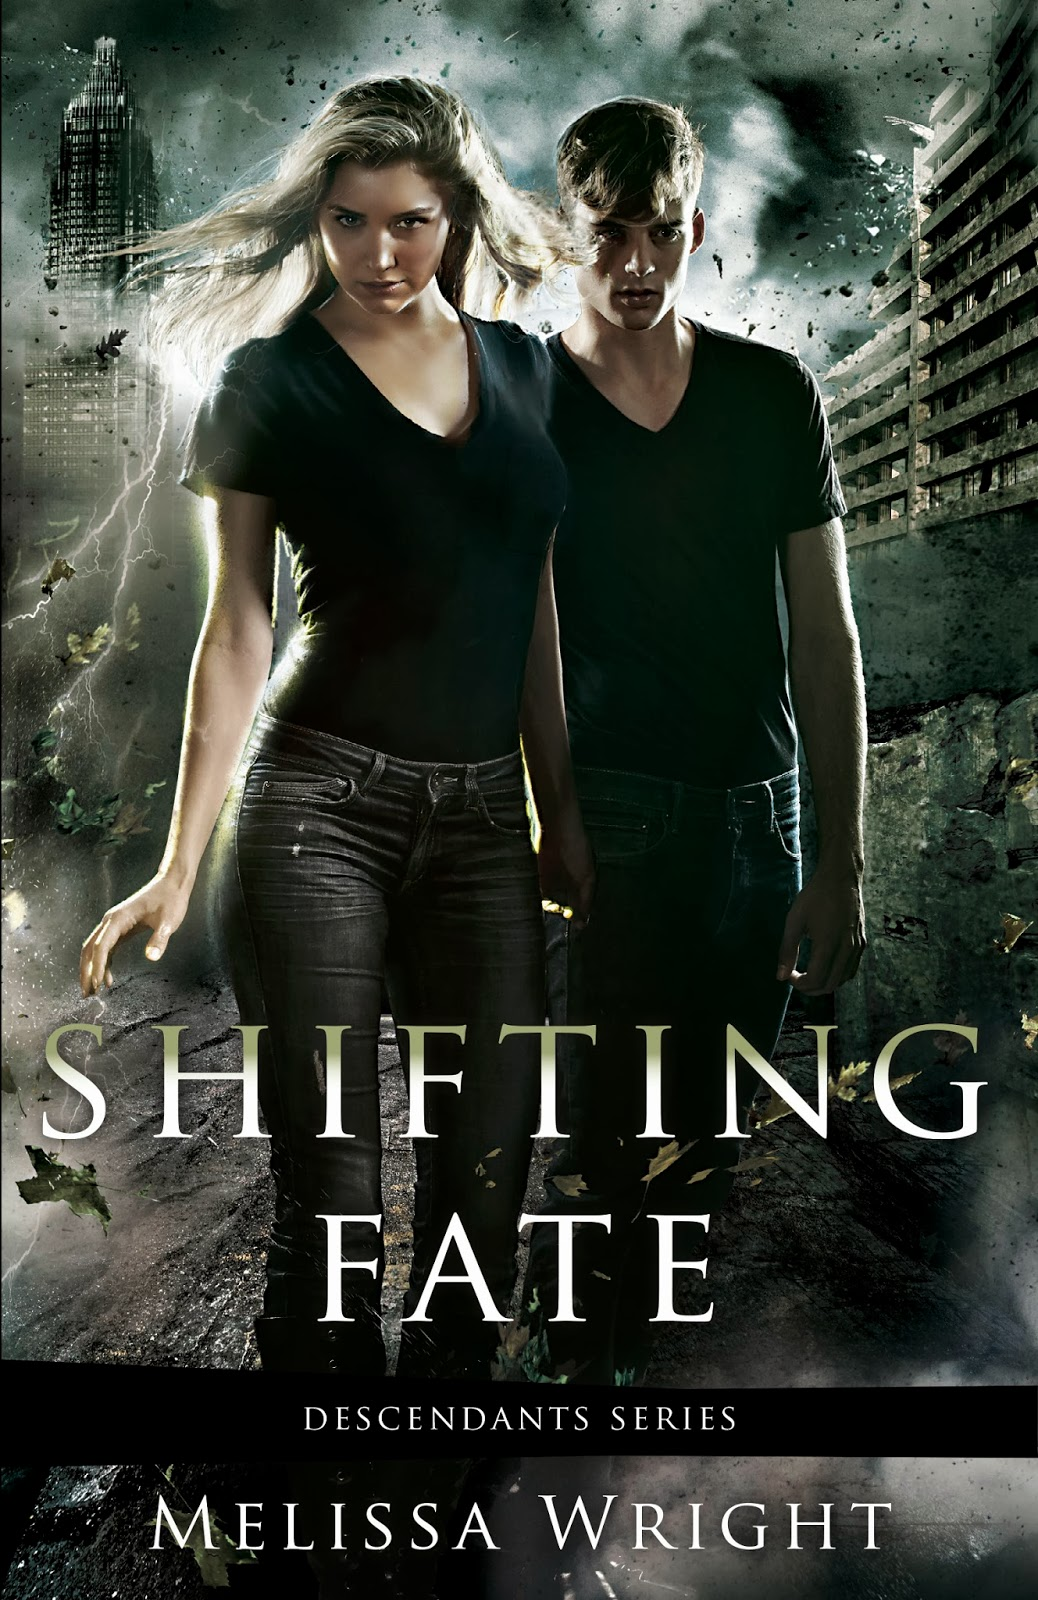 Shifting Fate (Descendants Series, #2)